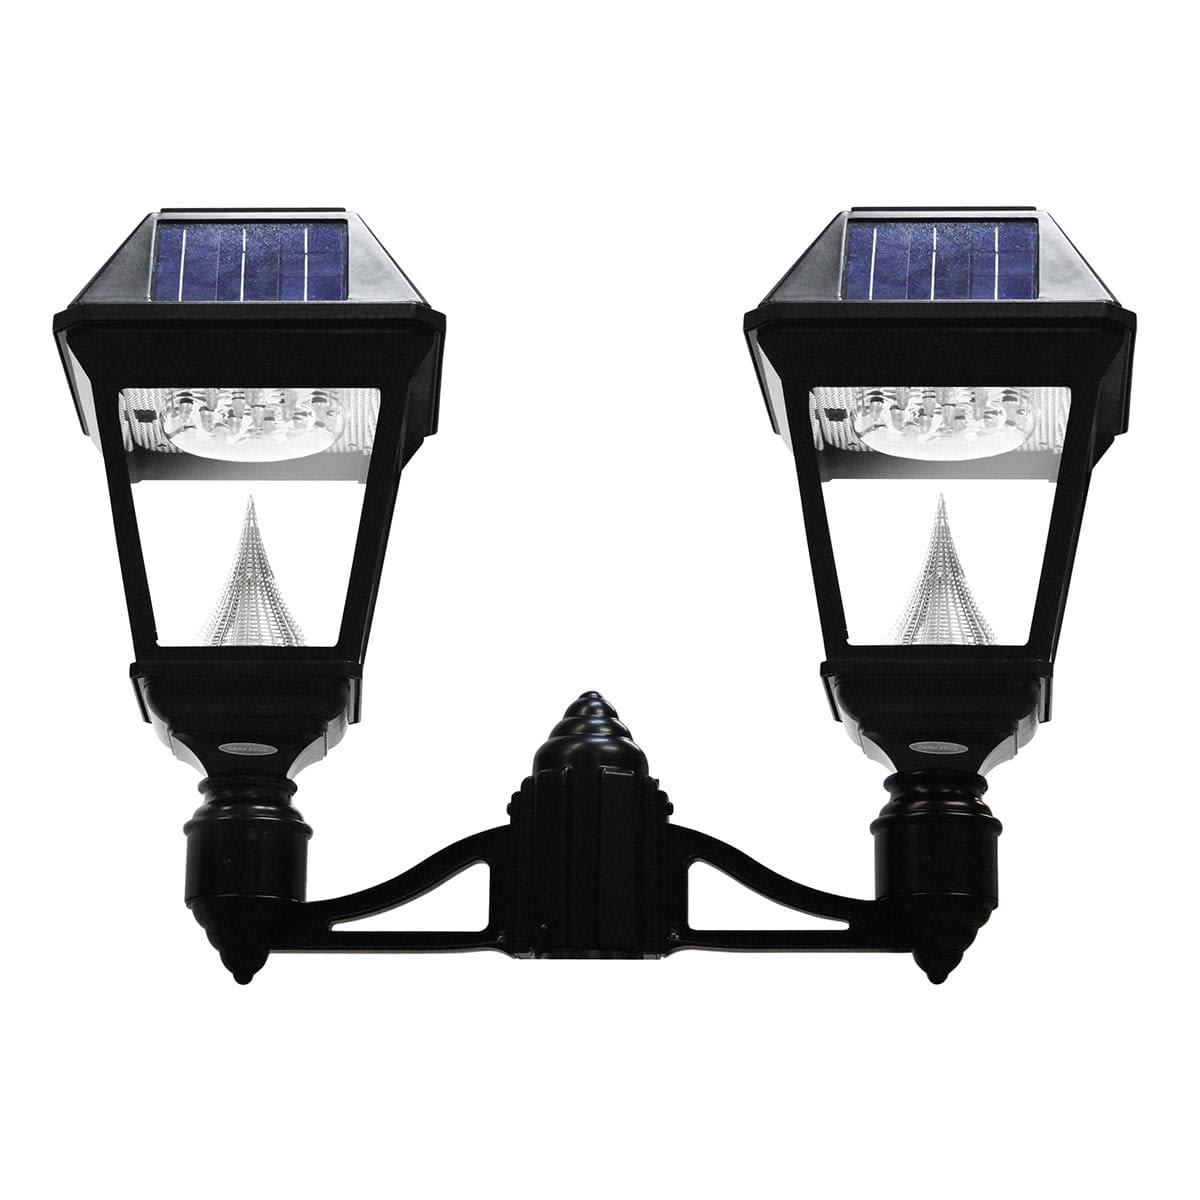 Gama Sonic Imperial II Series - Double Head Solar Post Light GS-97NF2